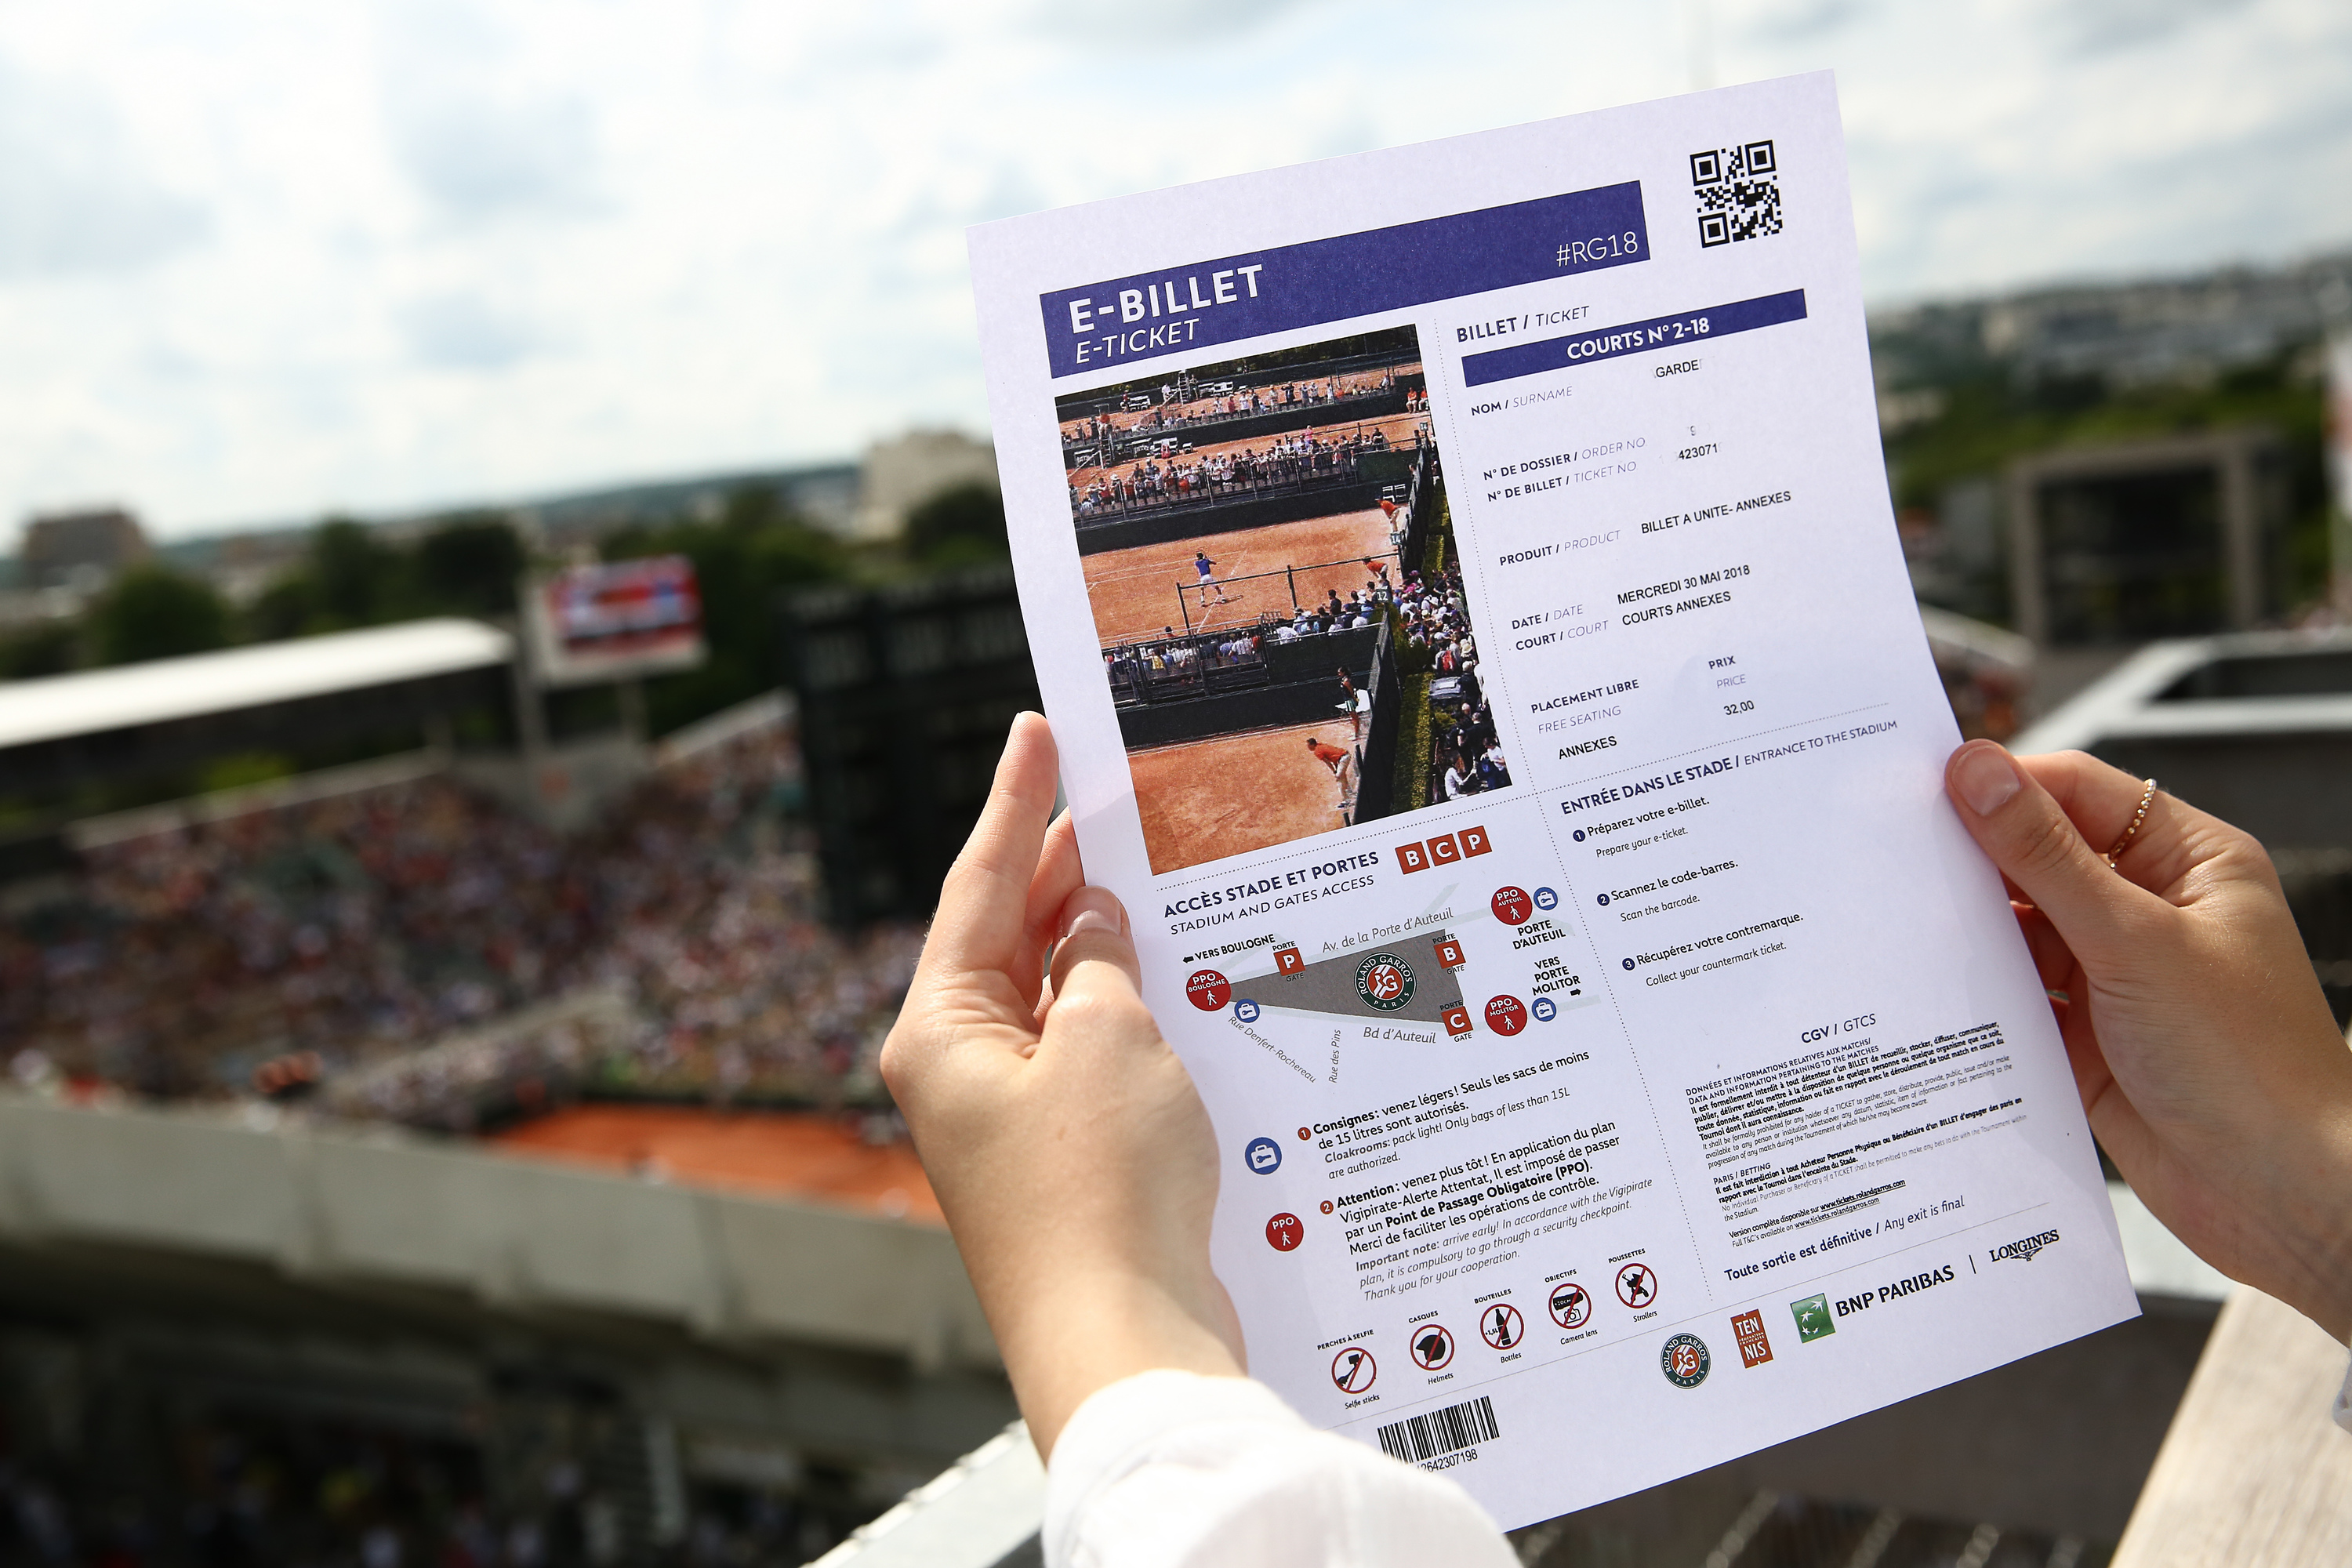 Handson Kweekkas Serre Rg19 How To Get Your Hands On A Ticket Roland Garros The 2019